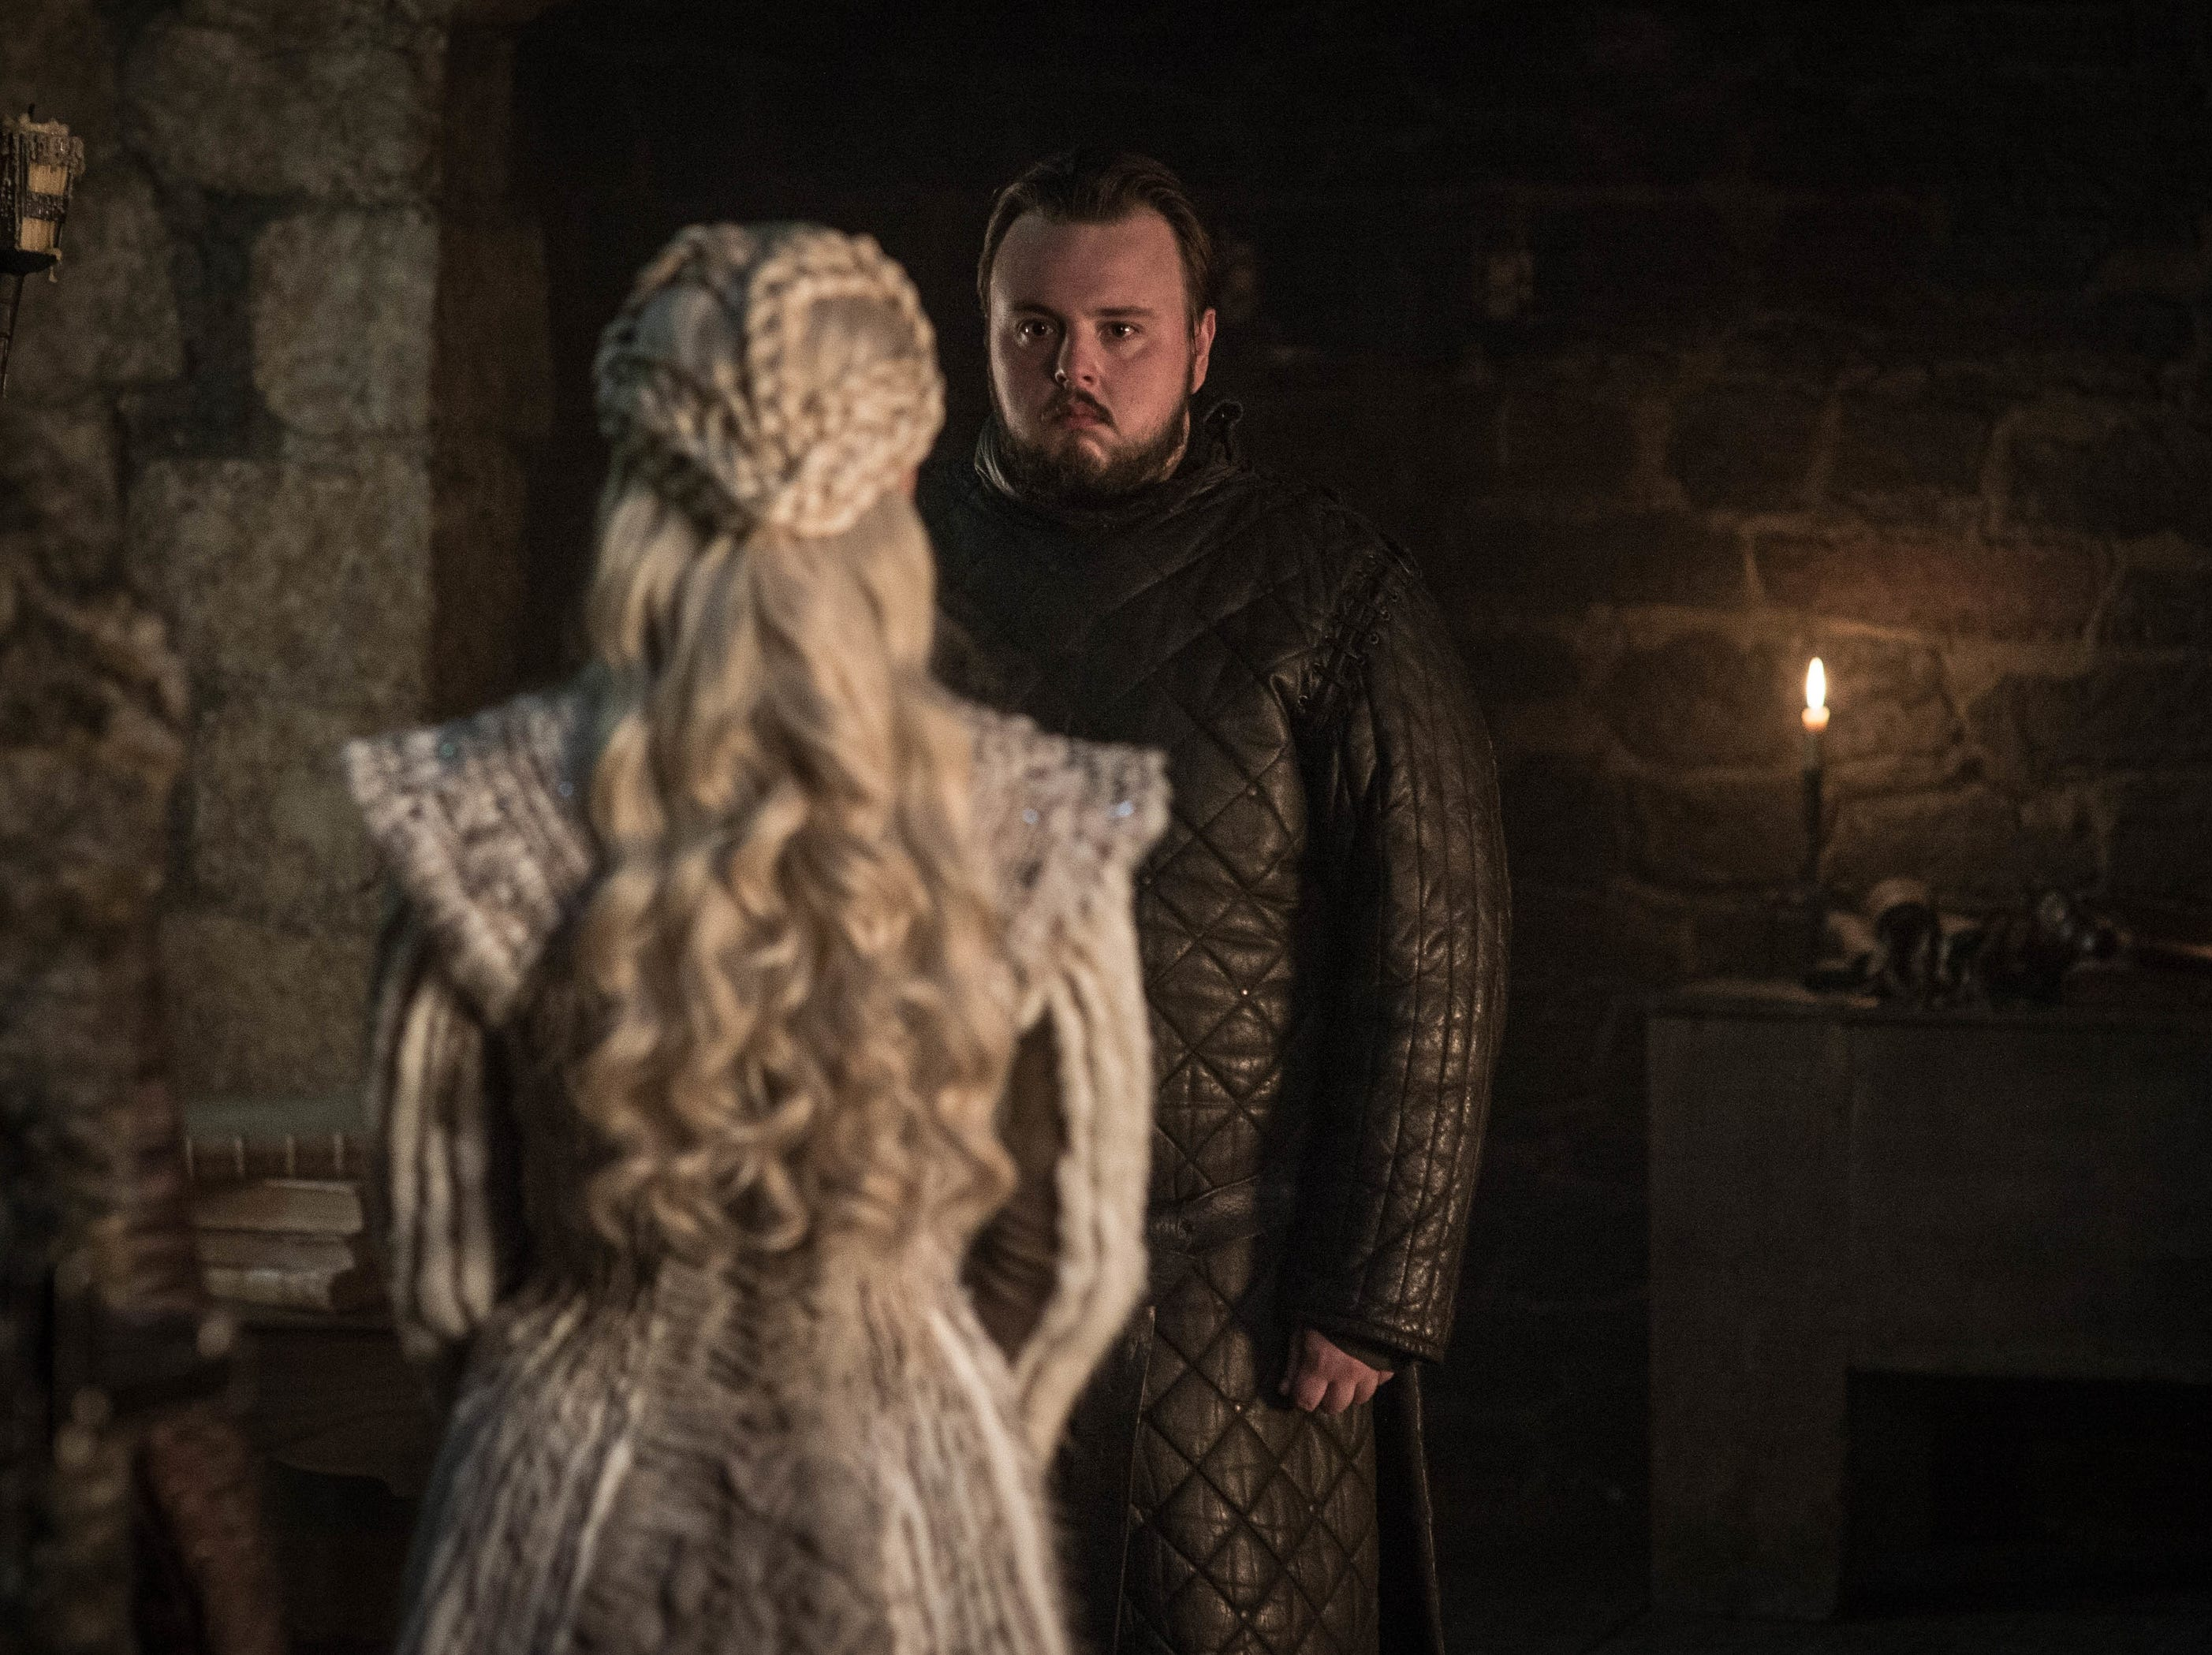 Samwell Tarly (John Bradley) gets some upsetting news from Daenerys Targaryen (Emilia Clarke).